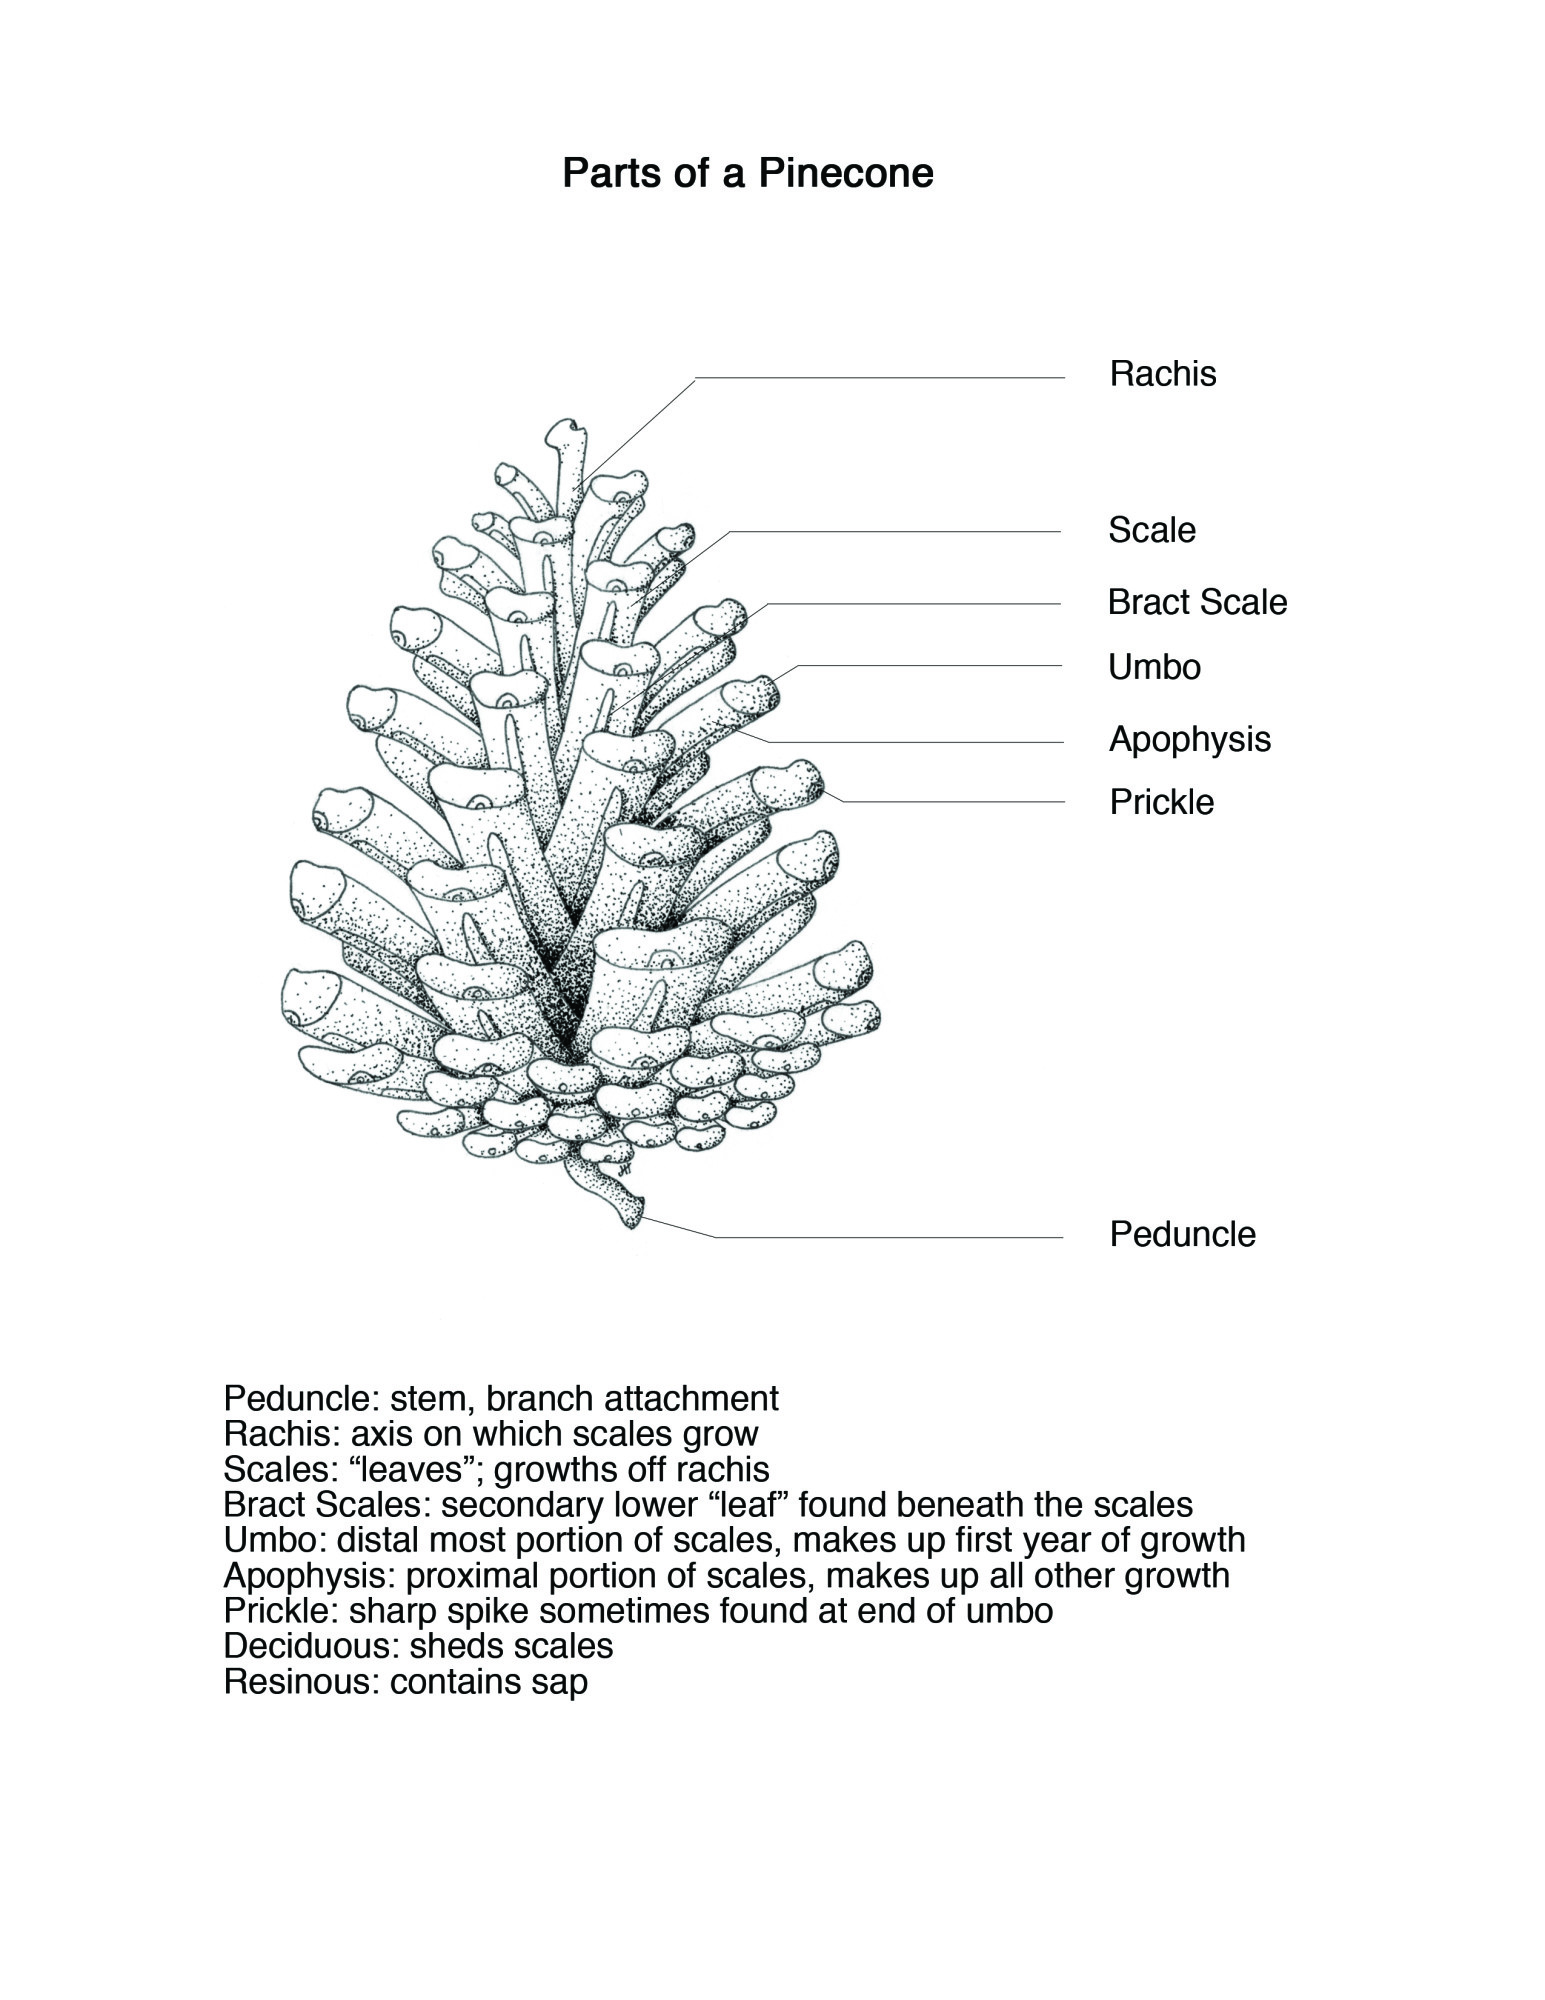 hight resolution of  incorporate all of the parts onto one individual pinecone the piece was drawn in stippled black ink with the leader lines and text added digitally